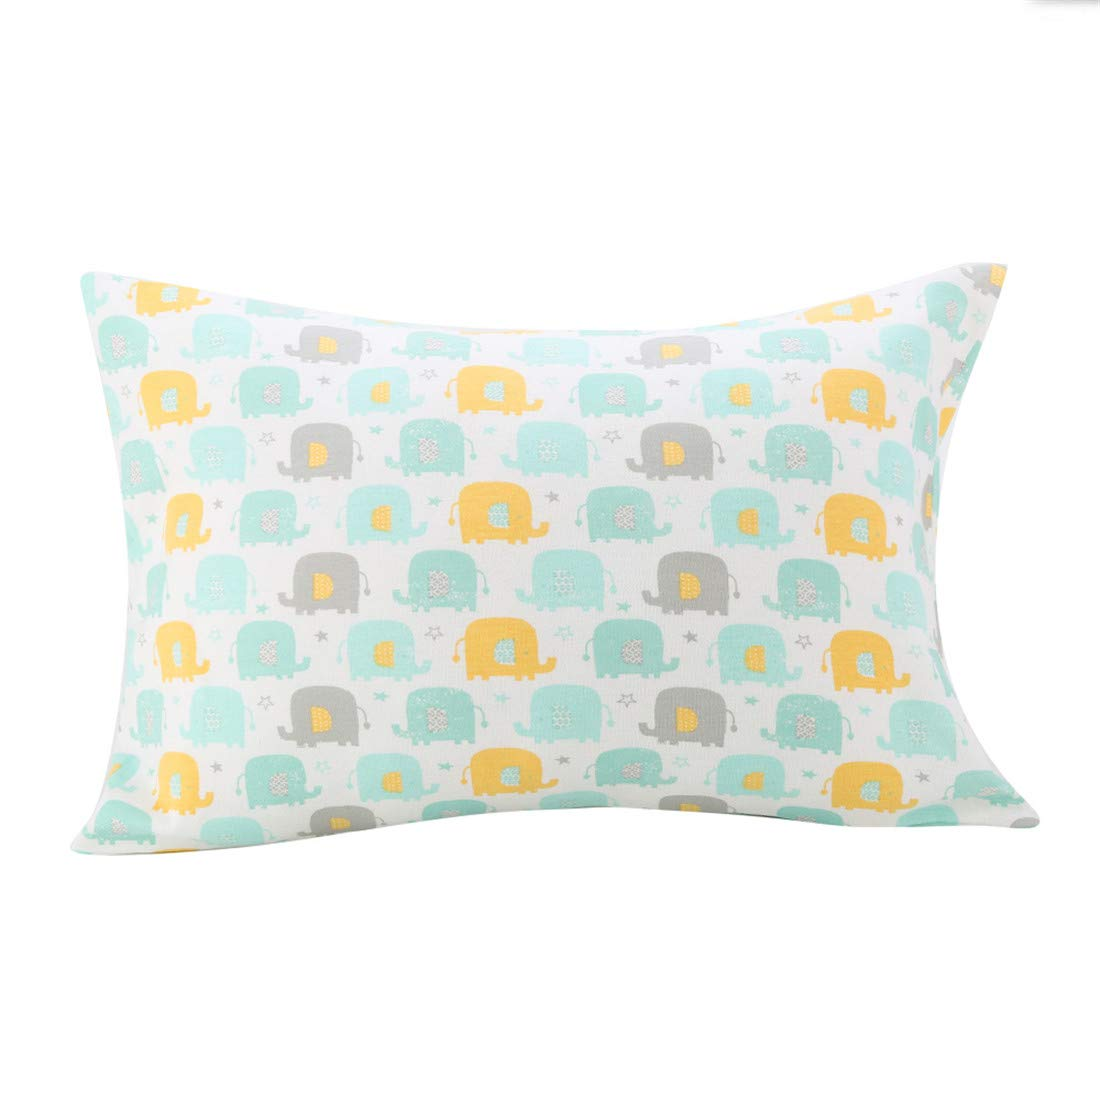 UOMNY Kids Toddler Pillowcases 1 Pack 100% Cotton Pillow Cover Pillowslip Case Fits Pillows sizesd 14 x 19 Inch for Kids Bedding Pillow Cover Baby Pillow Cases Elephants Kids' Pillowcase